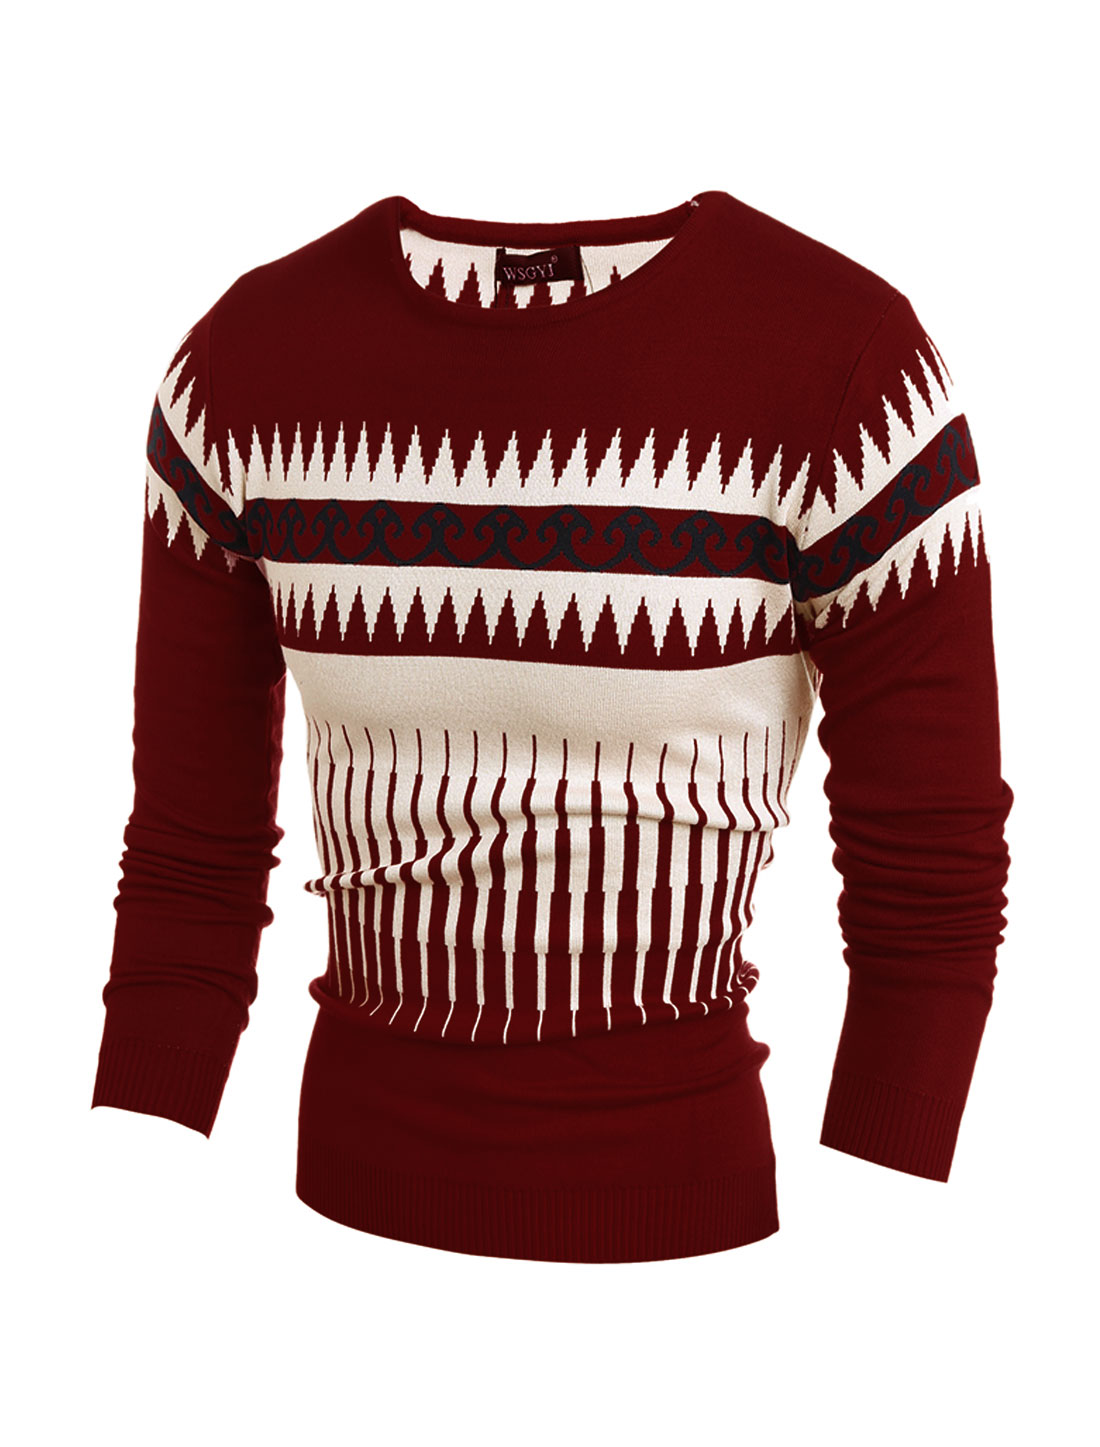 Men Crew Neck Geometric Novelty Slim Fit Knit Shirt Red M